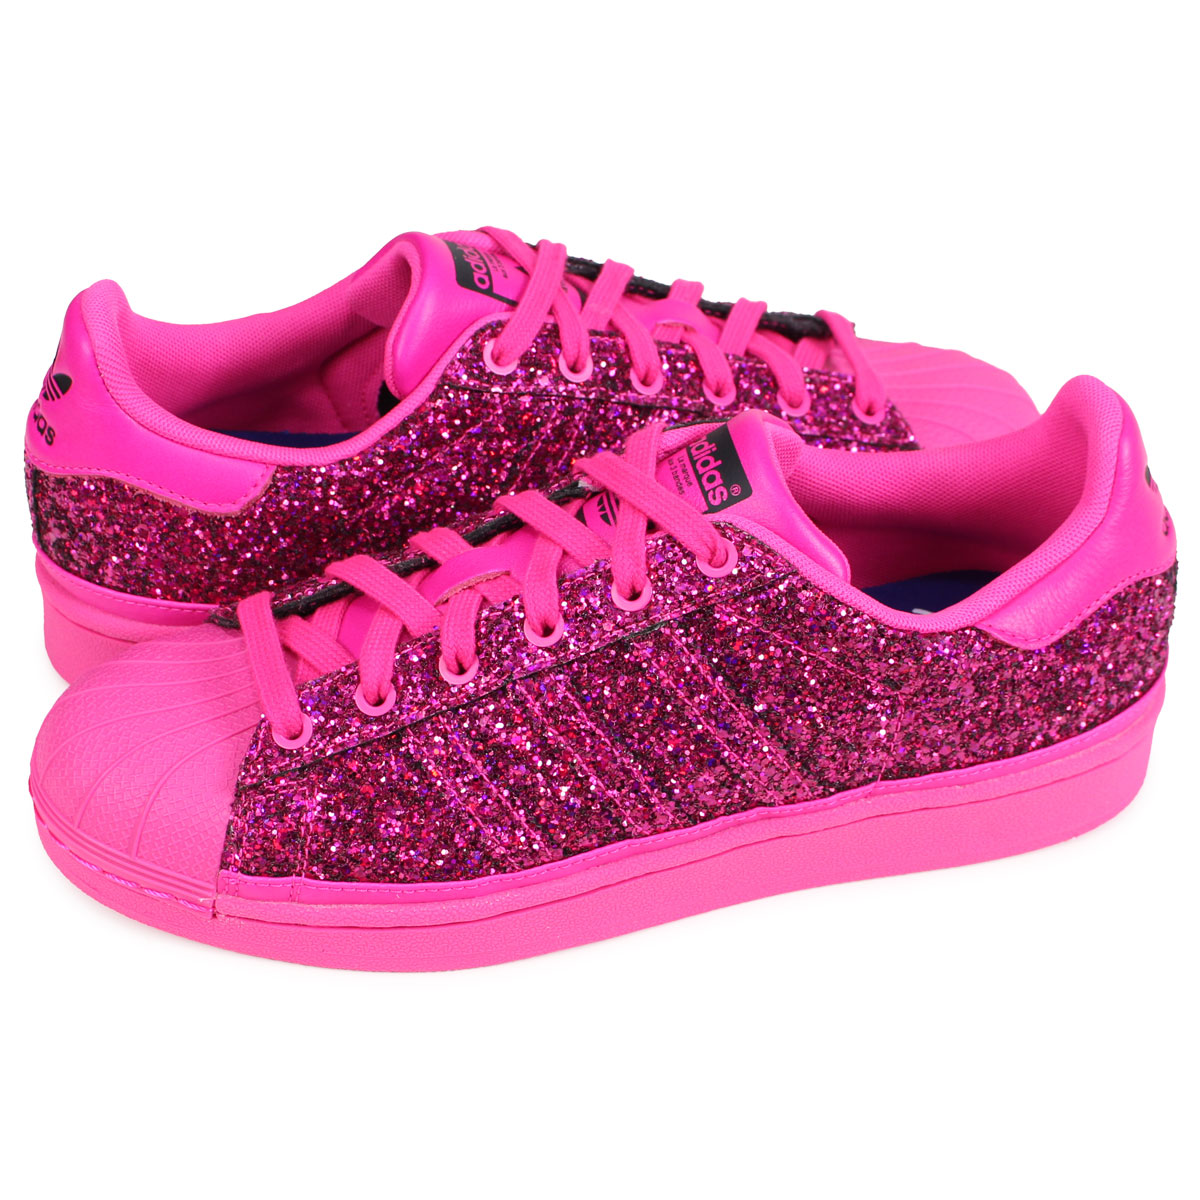 3b255ebb8be adidas Originals SUPERSTAR W Adidas originals superstar sneakers Lady s  pink BD8058  1 18 Shinnyu load   191